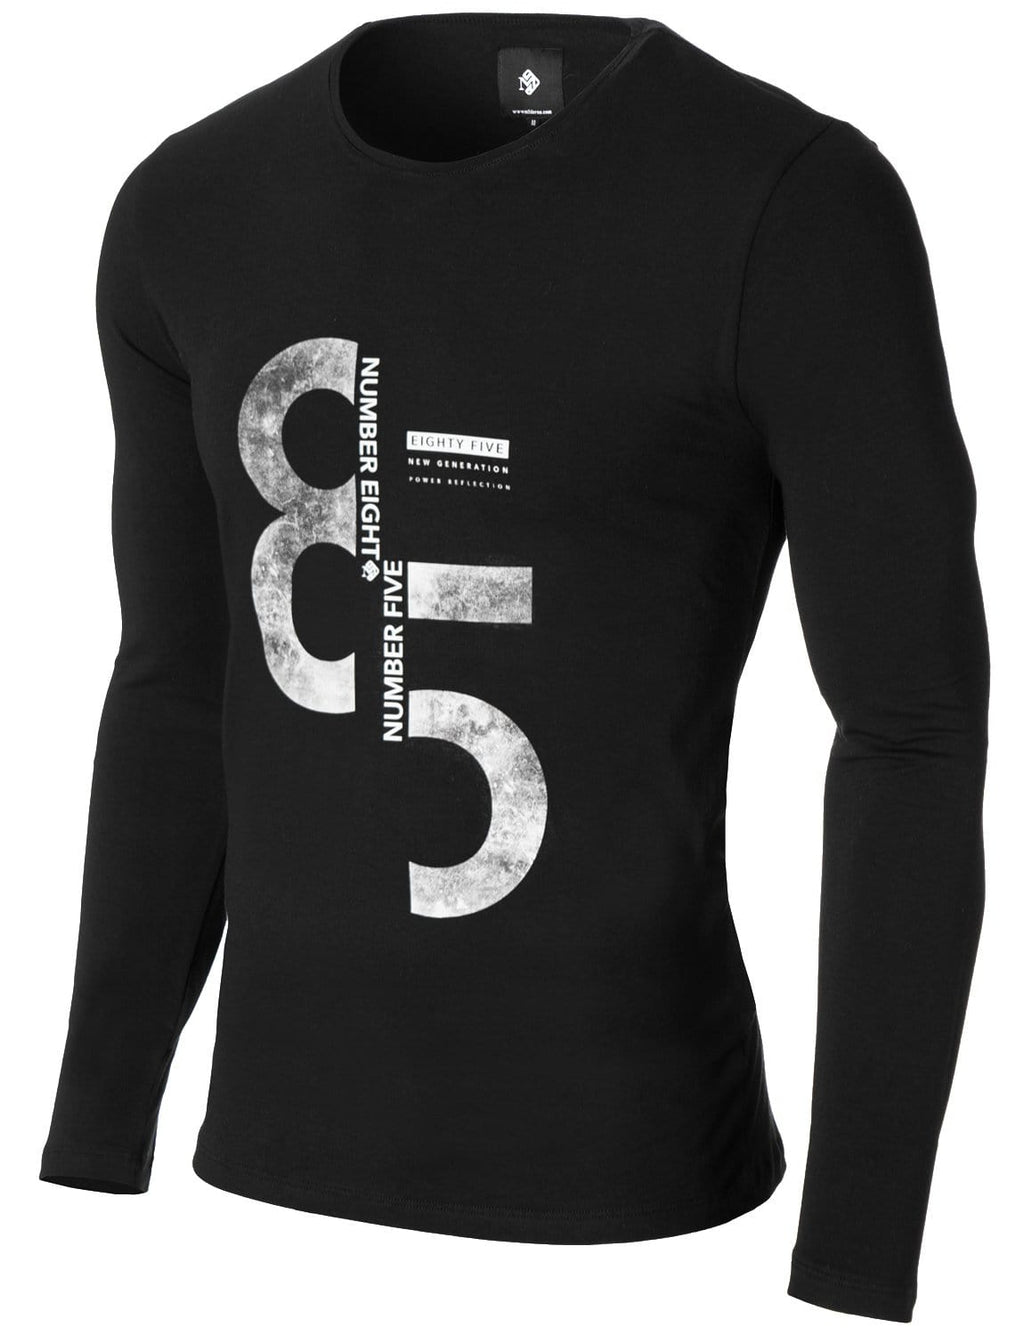 long sleeve graphic t-shirts for men